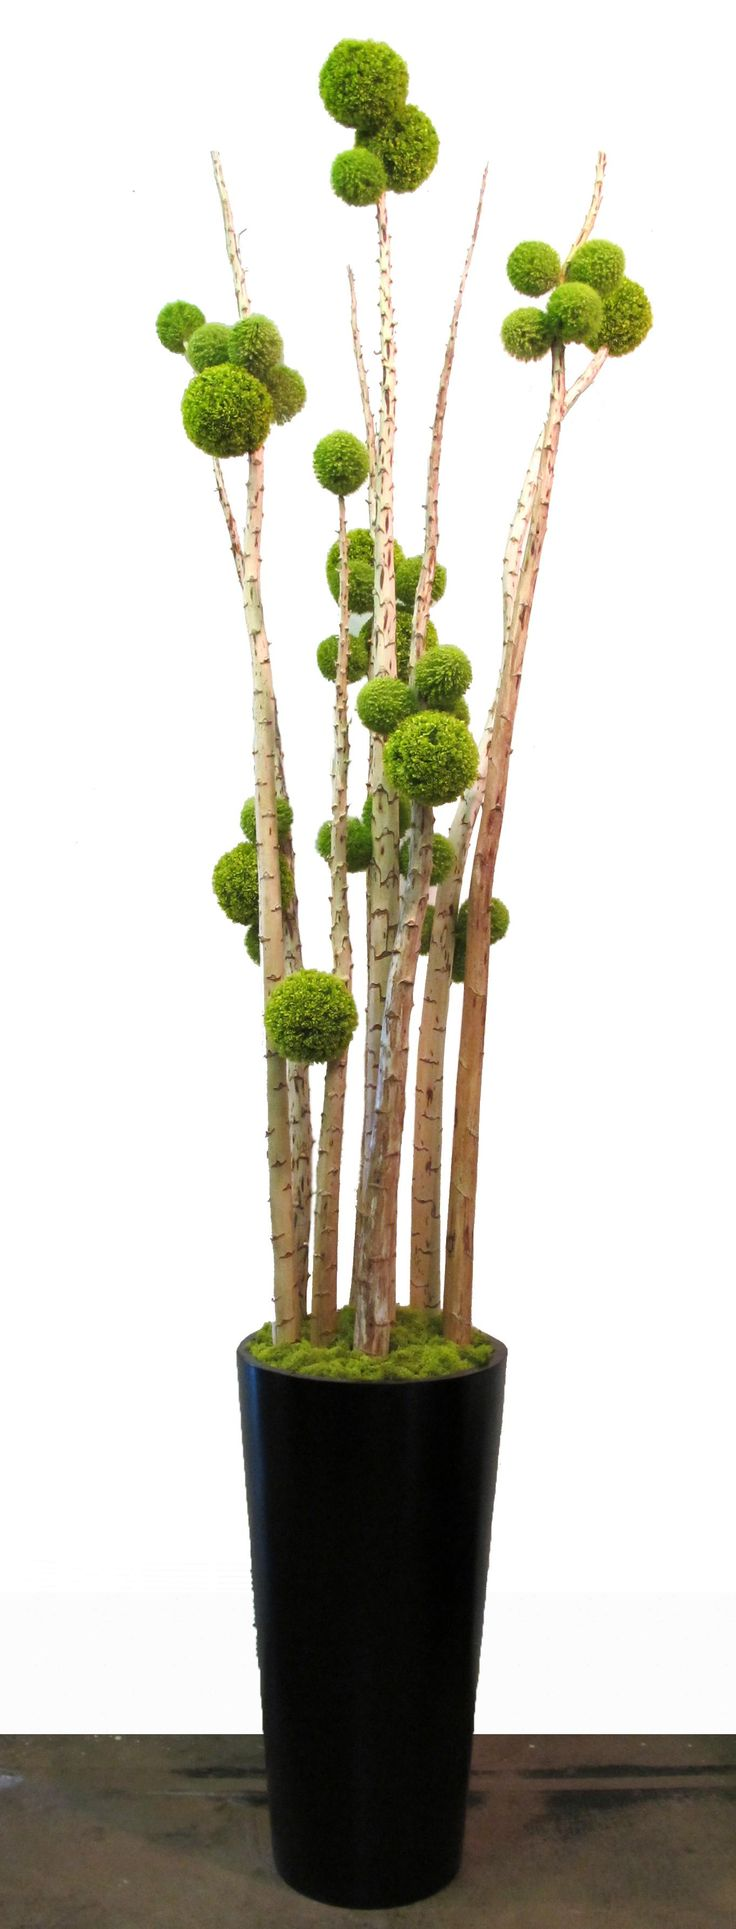 """FL1545  Green Allium Sphere on Yucca Poles in Black Fiberglass Tapered Round Container with Chartruese Reindeer Moss 123""""H x 30"""" Dia  $3245 ..."""